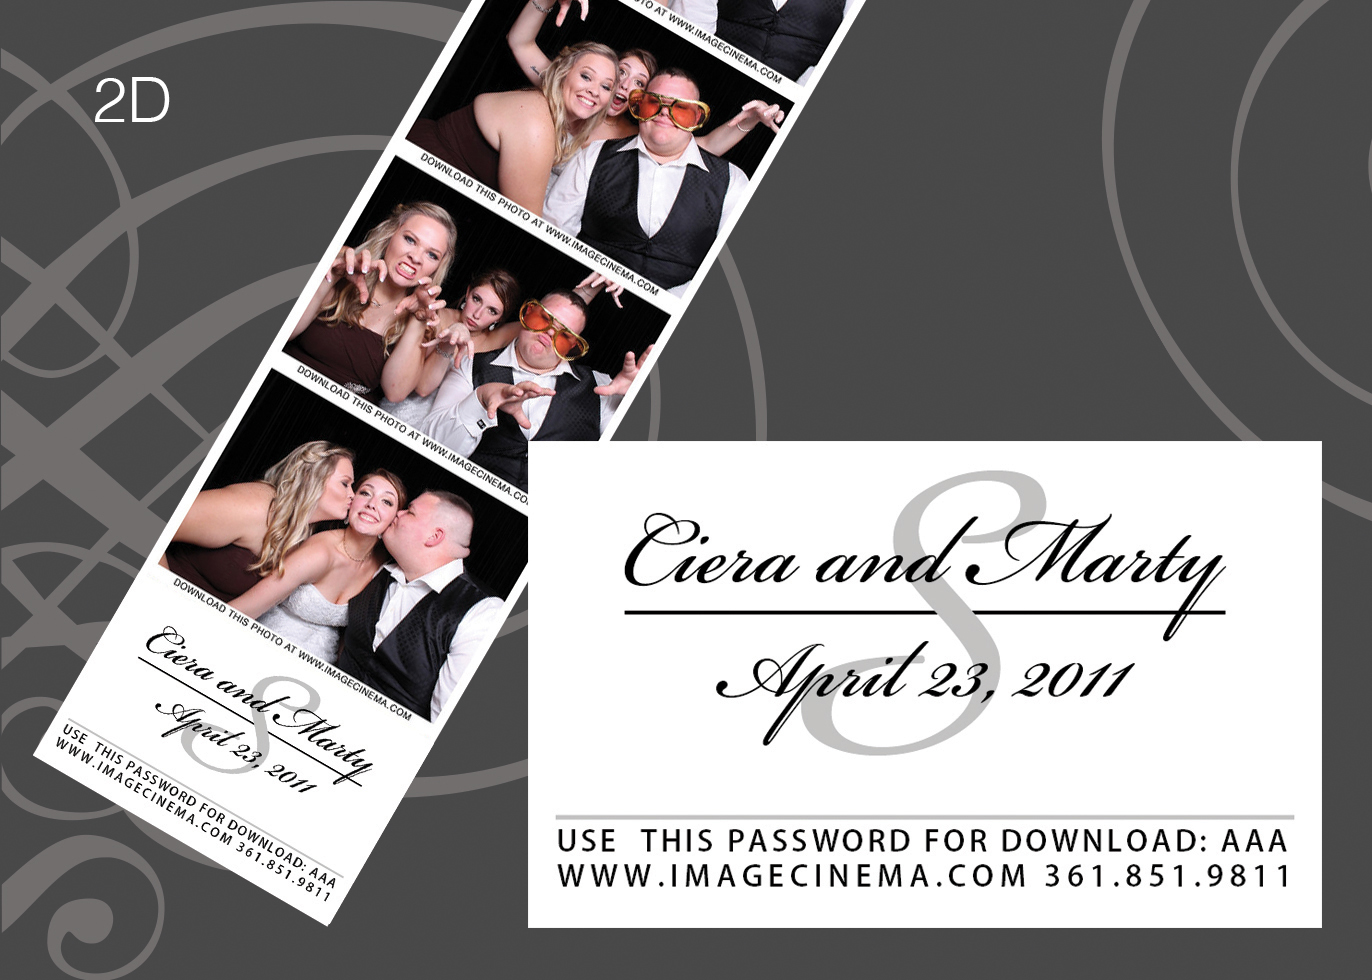 Photo Booth 2D